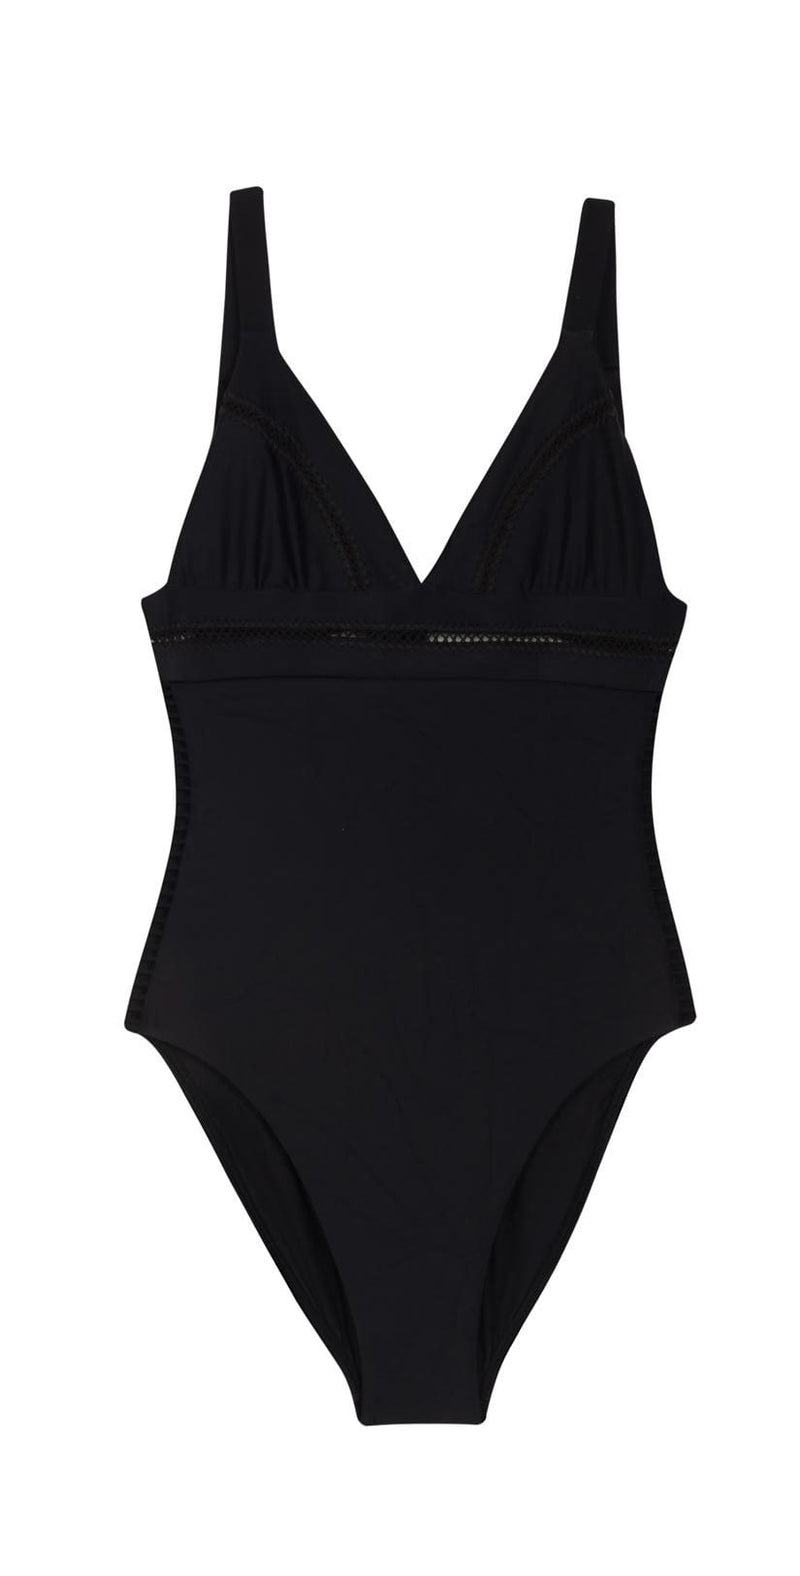 Details about  /Pilyq New With Tags Ellie One Piece Swimsuit Black